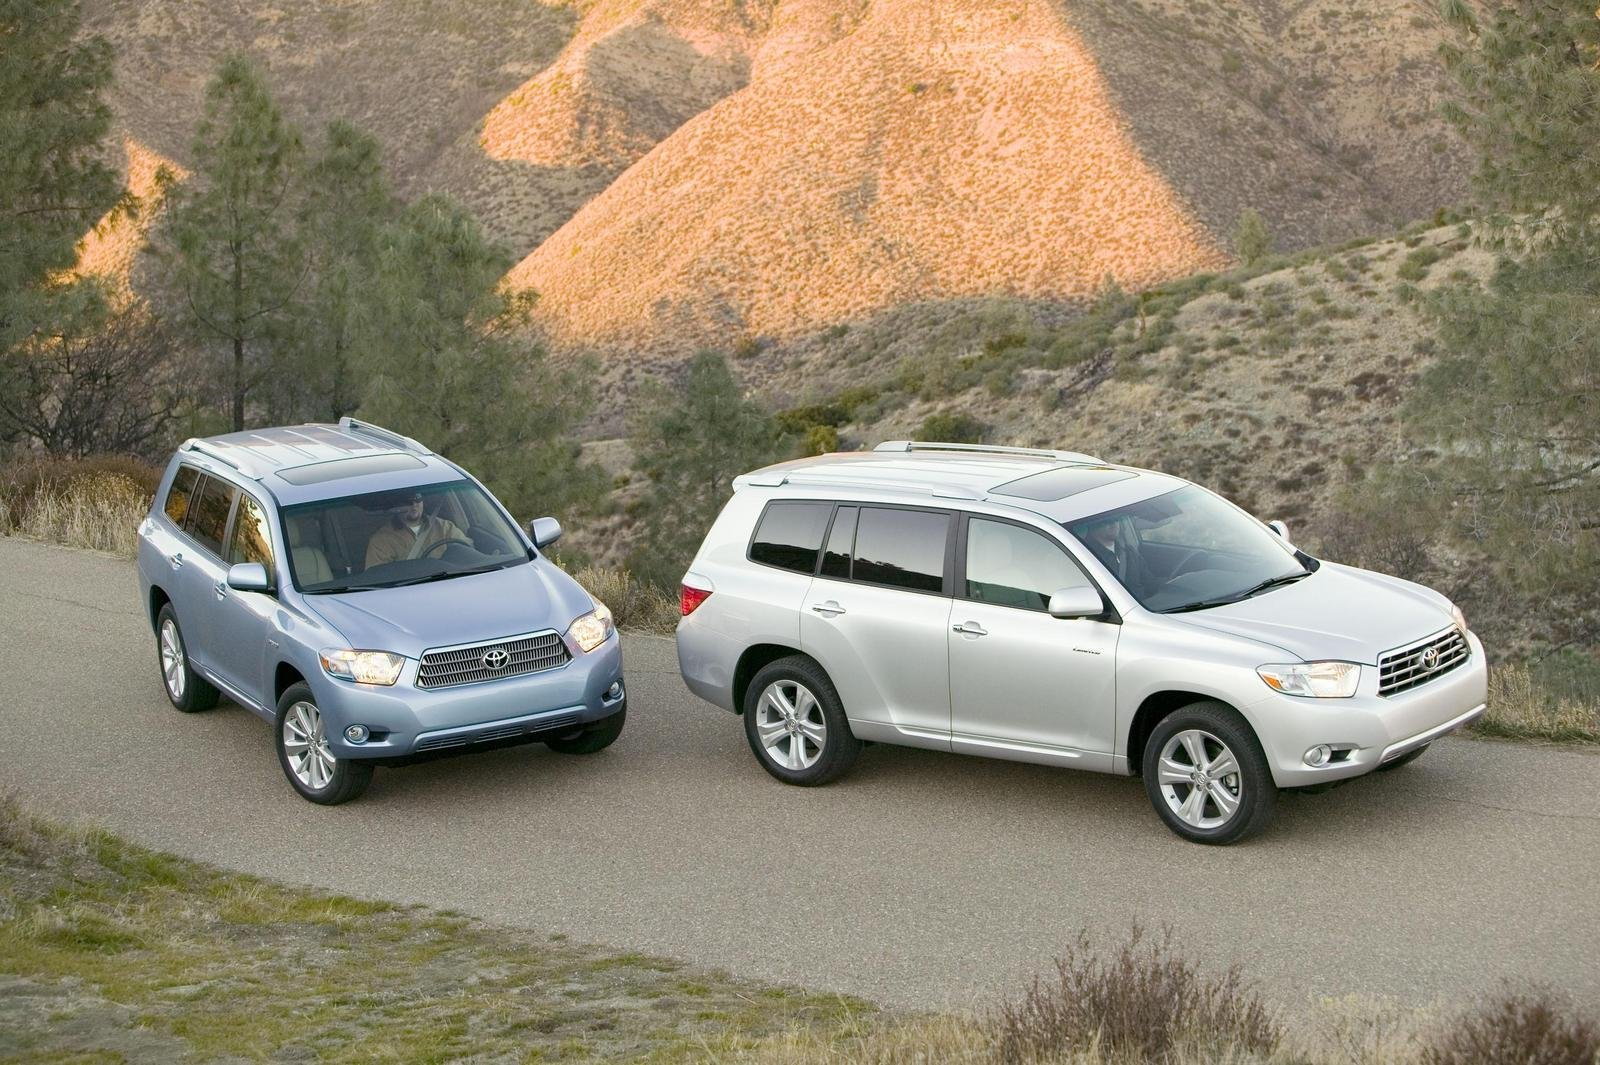 2008 toyota highlander prices announced news top speed. Black Bedroom Furniture Sets. Home Design Ideas